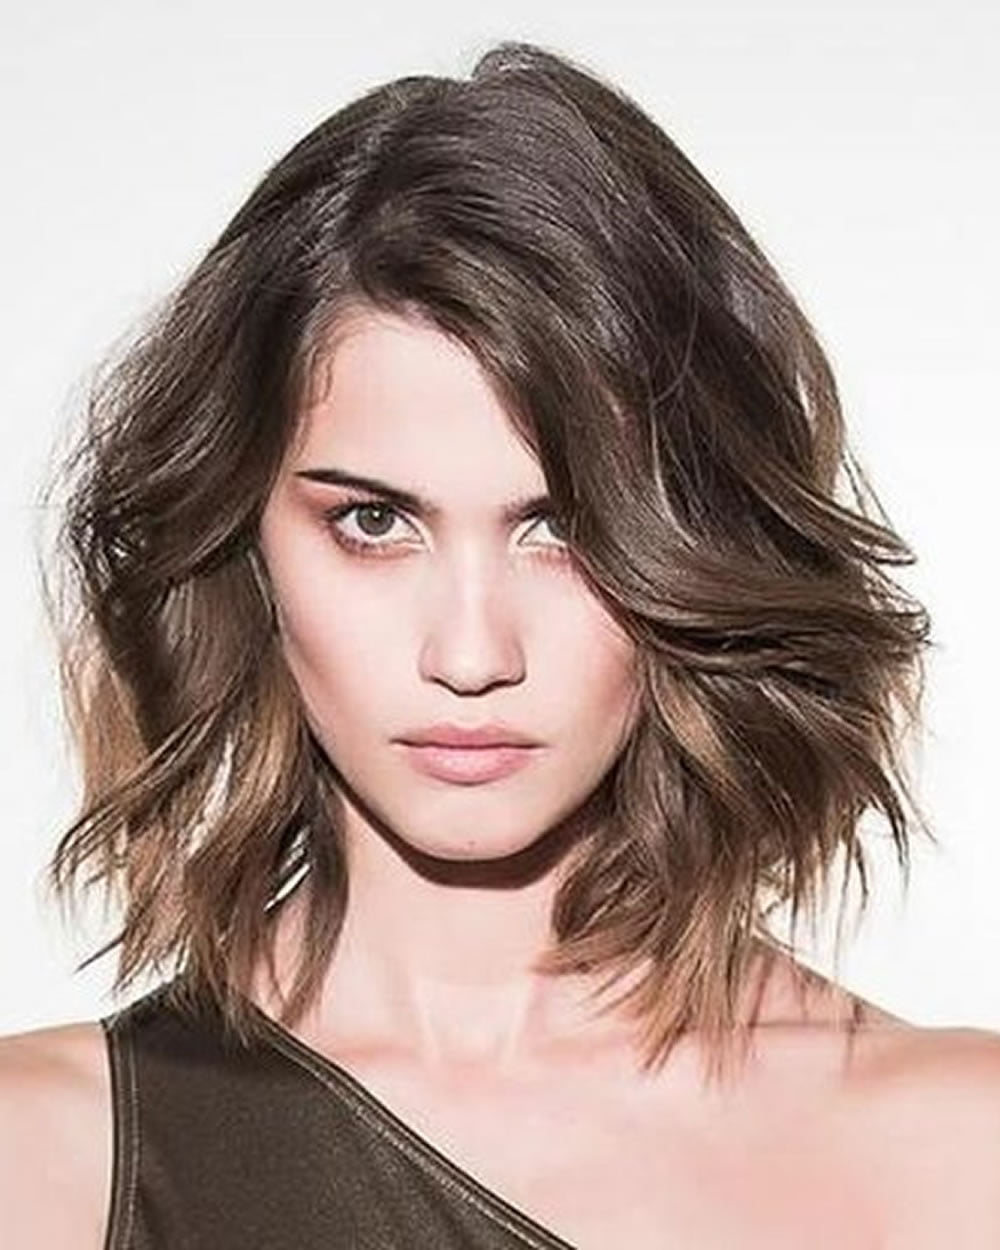 36 Excellent Short Bob Haircut Models You'll Like | Hair Colors - Page 2 - HAIRSTYLES